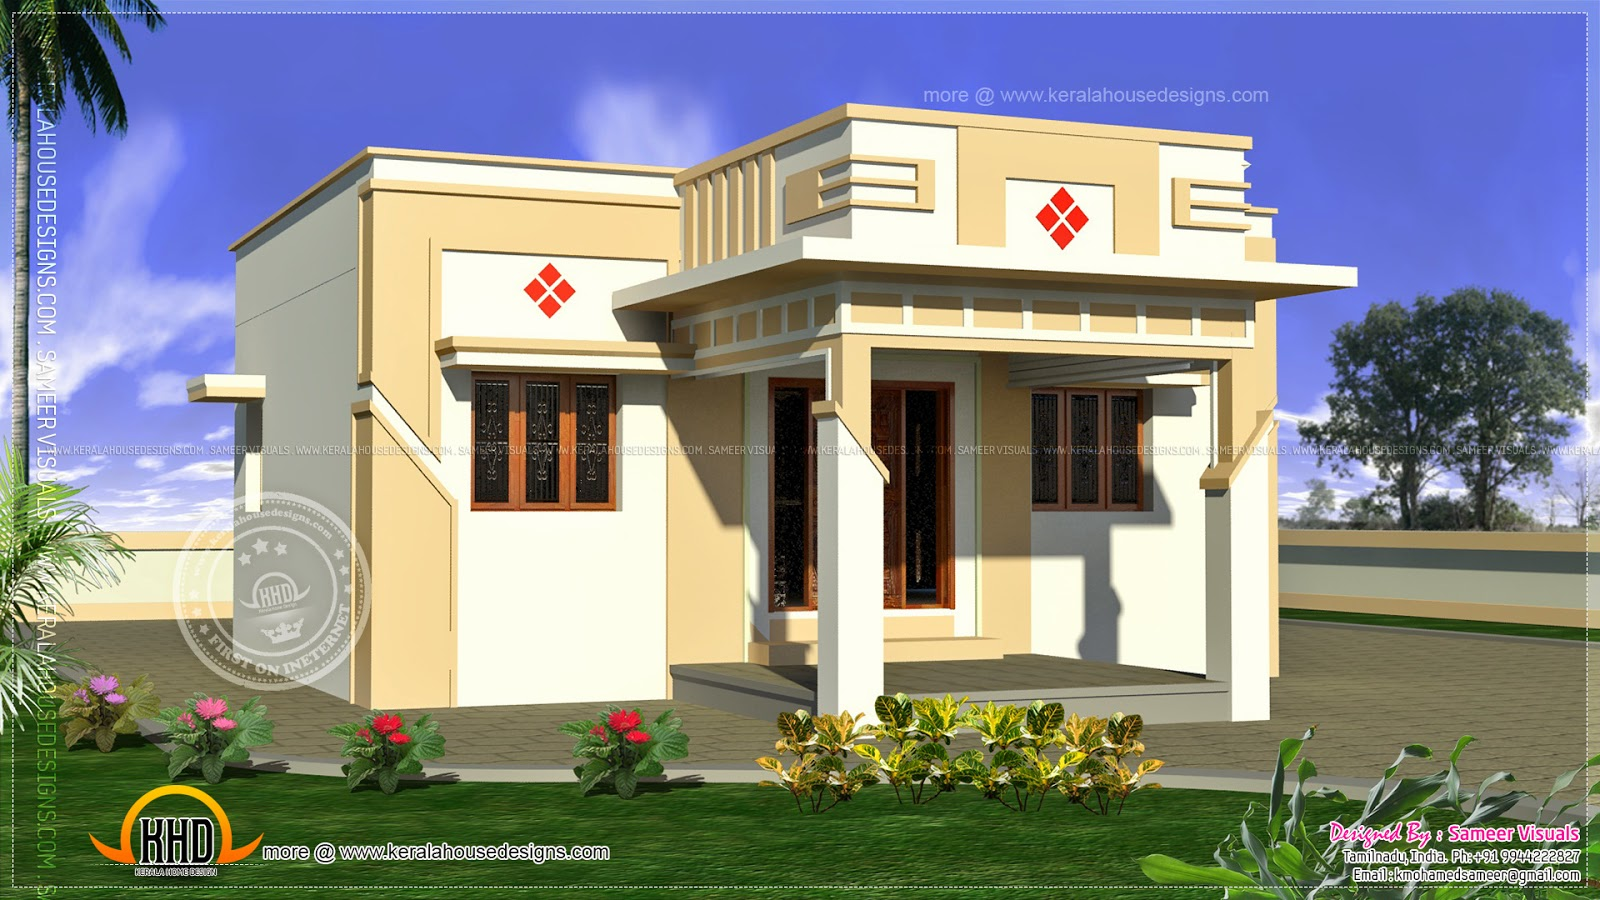 Simple And Low Budget House Plans Home Design Architecture